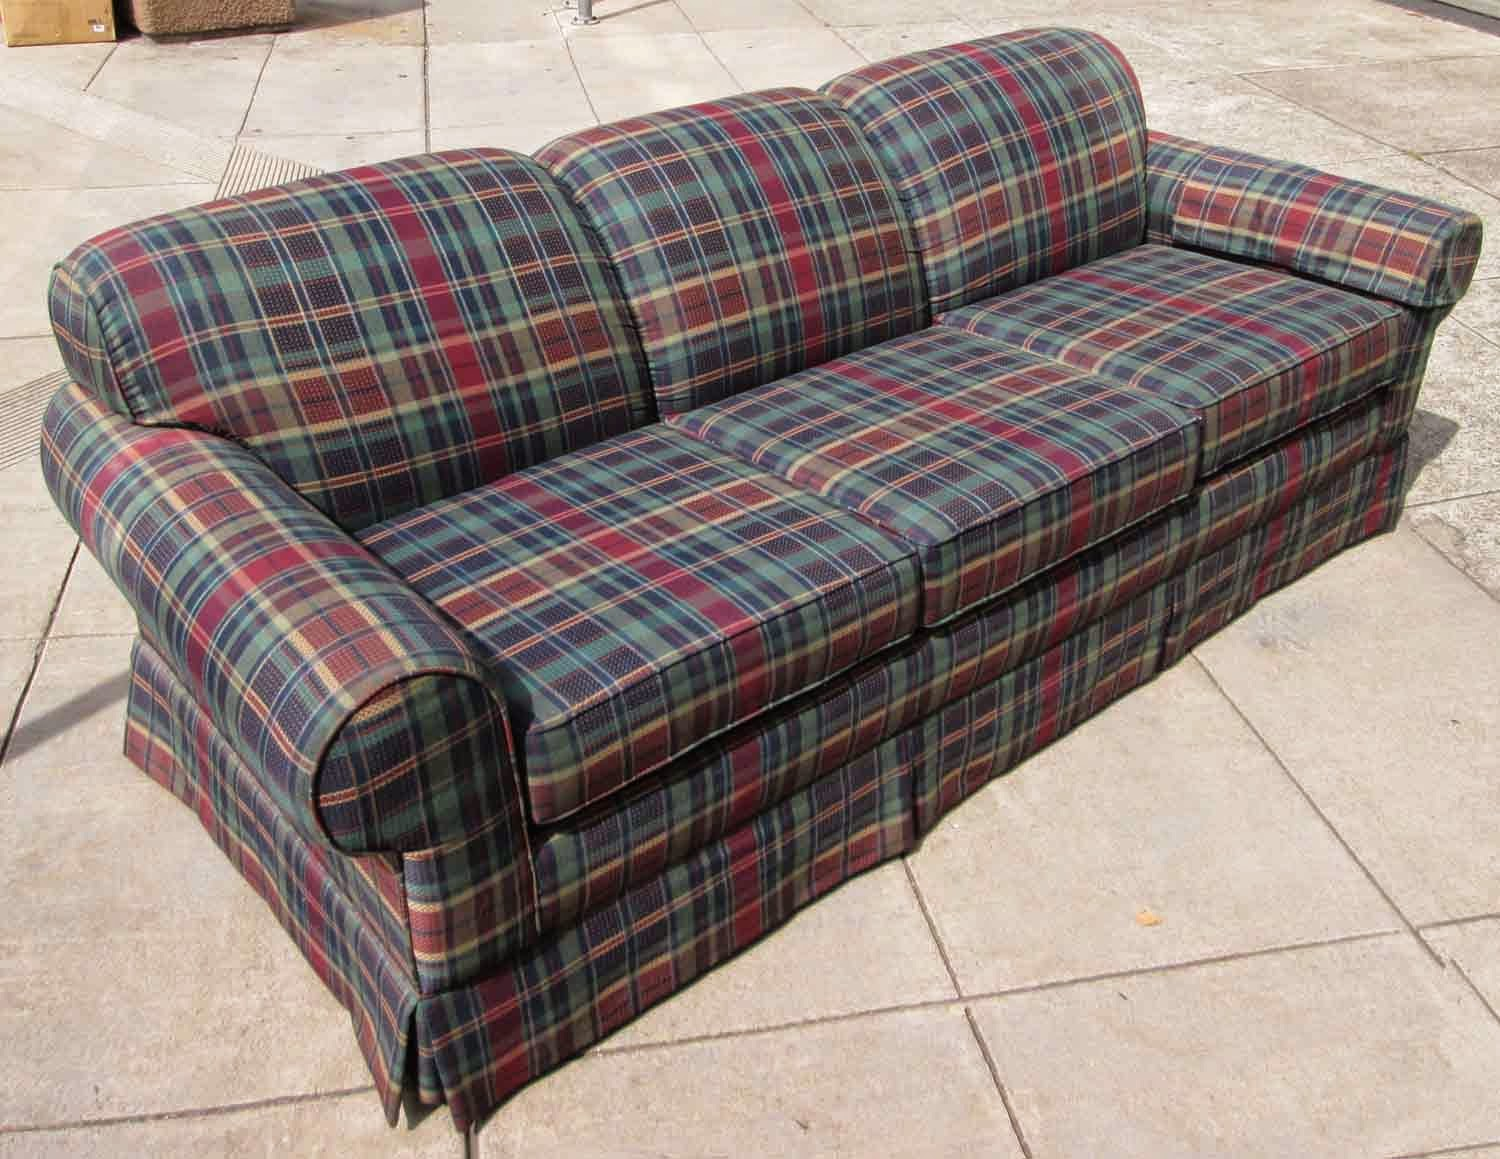 plaid sofa the tremont elegant red plaid sofa set 11880 plaid sofa ebay plaid sofa plaid. Black Bedroom Furniture Sets. Home Design Ideas